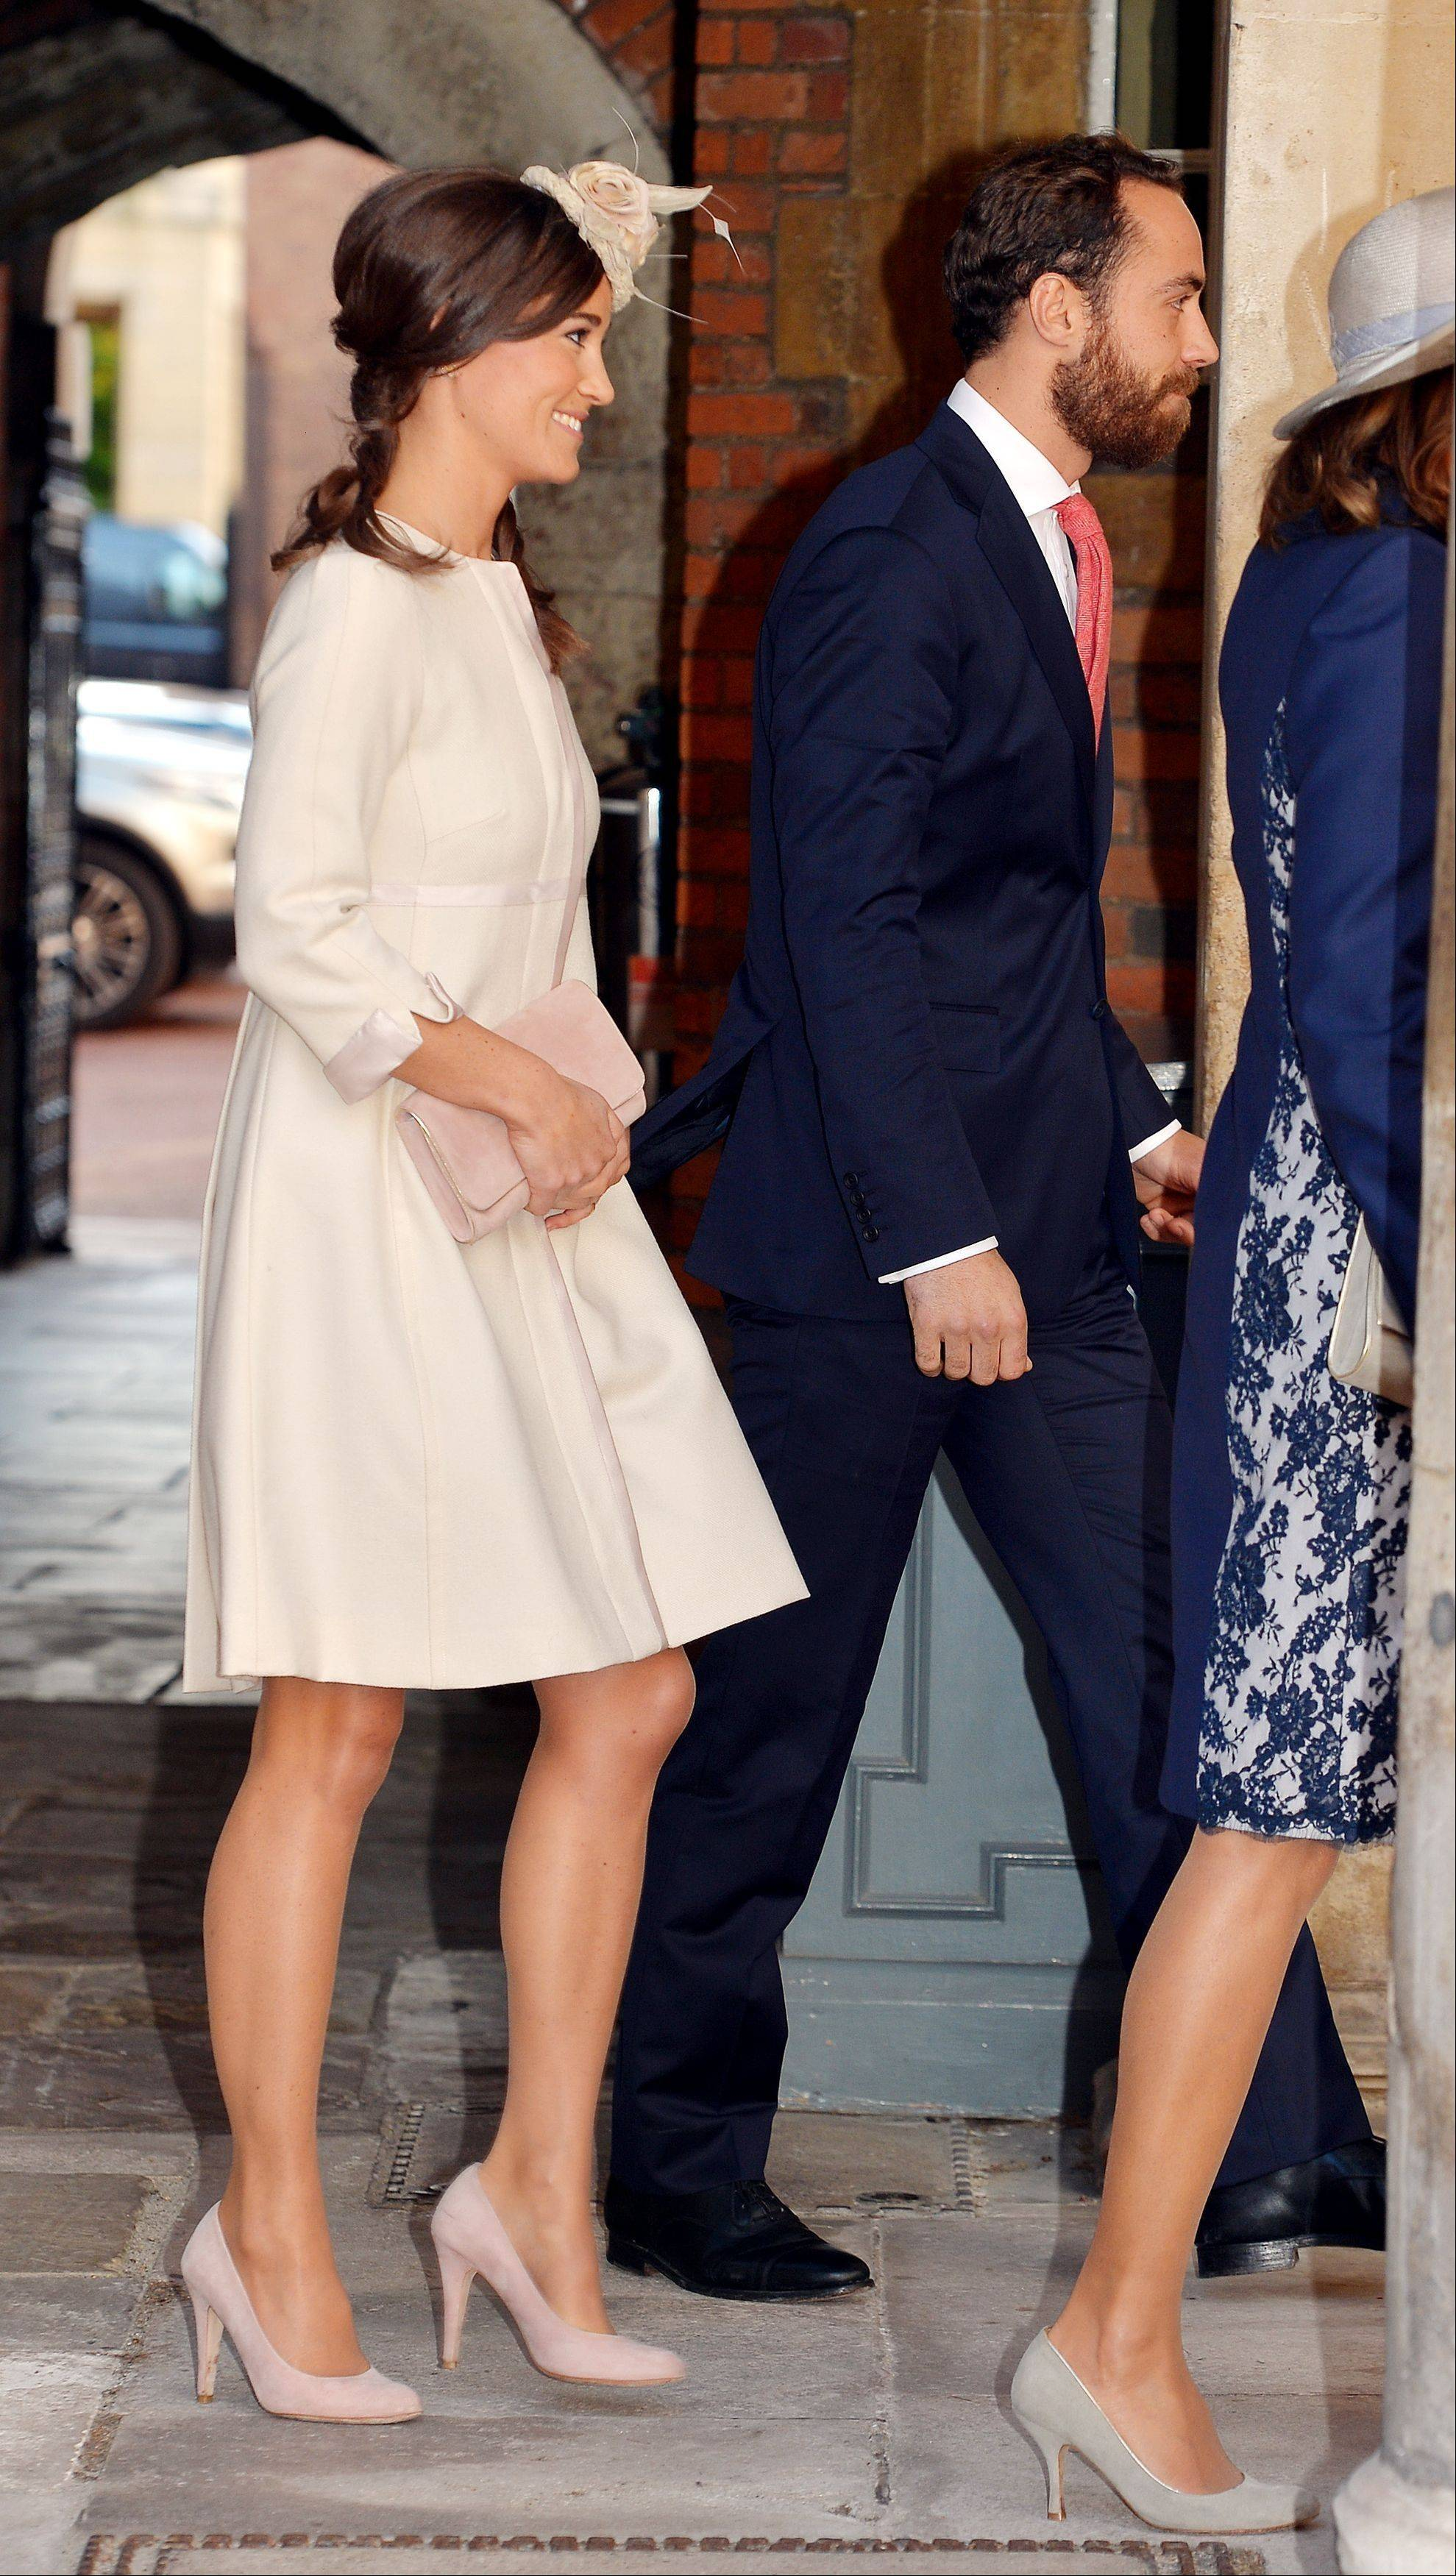 Pippa and James Middleton the bother and sister of Britain's Kate Duchess of Cambridge arrive at the Chapel Royal in St James' Palace for the christening their nephew Prince George.